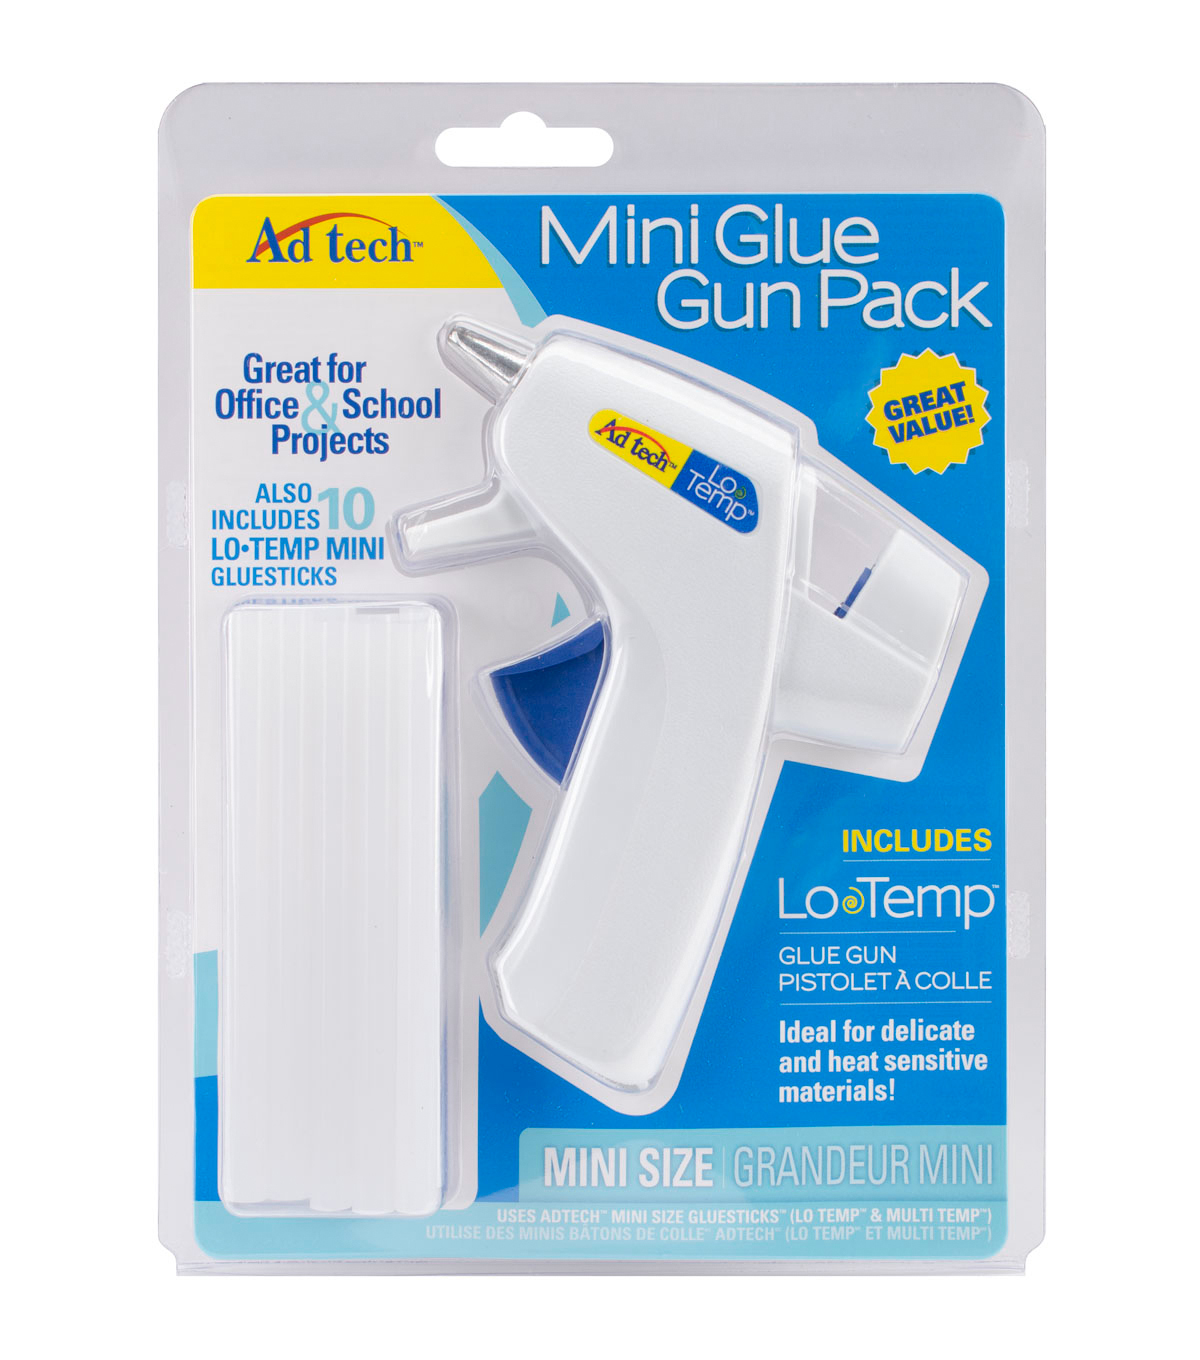 Low Temp Mini Glue Gun Pack